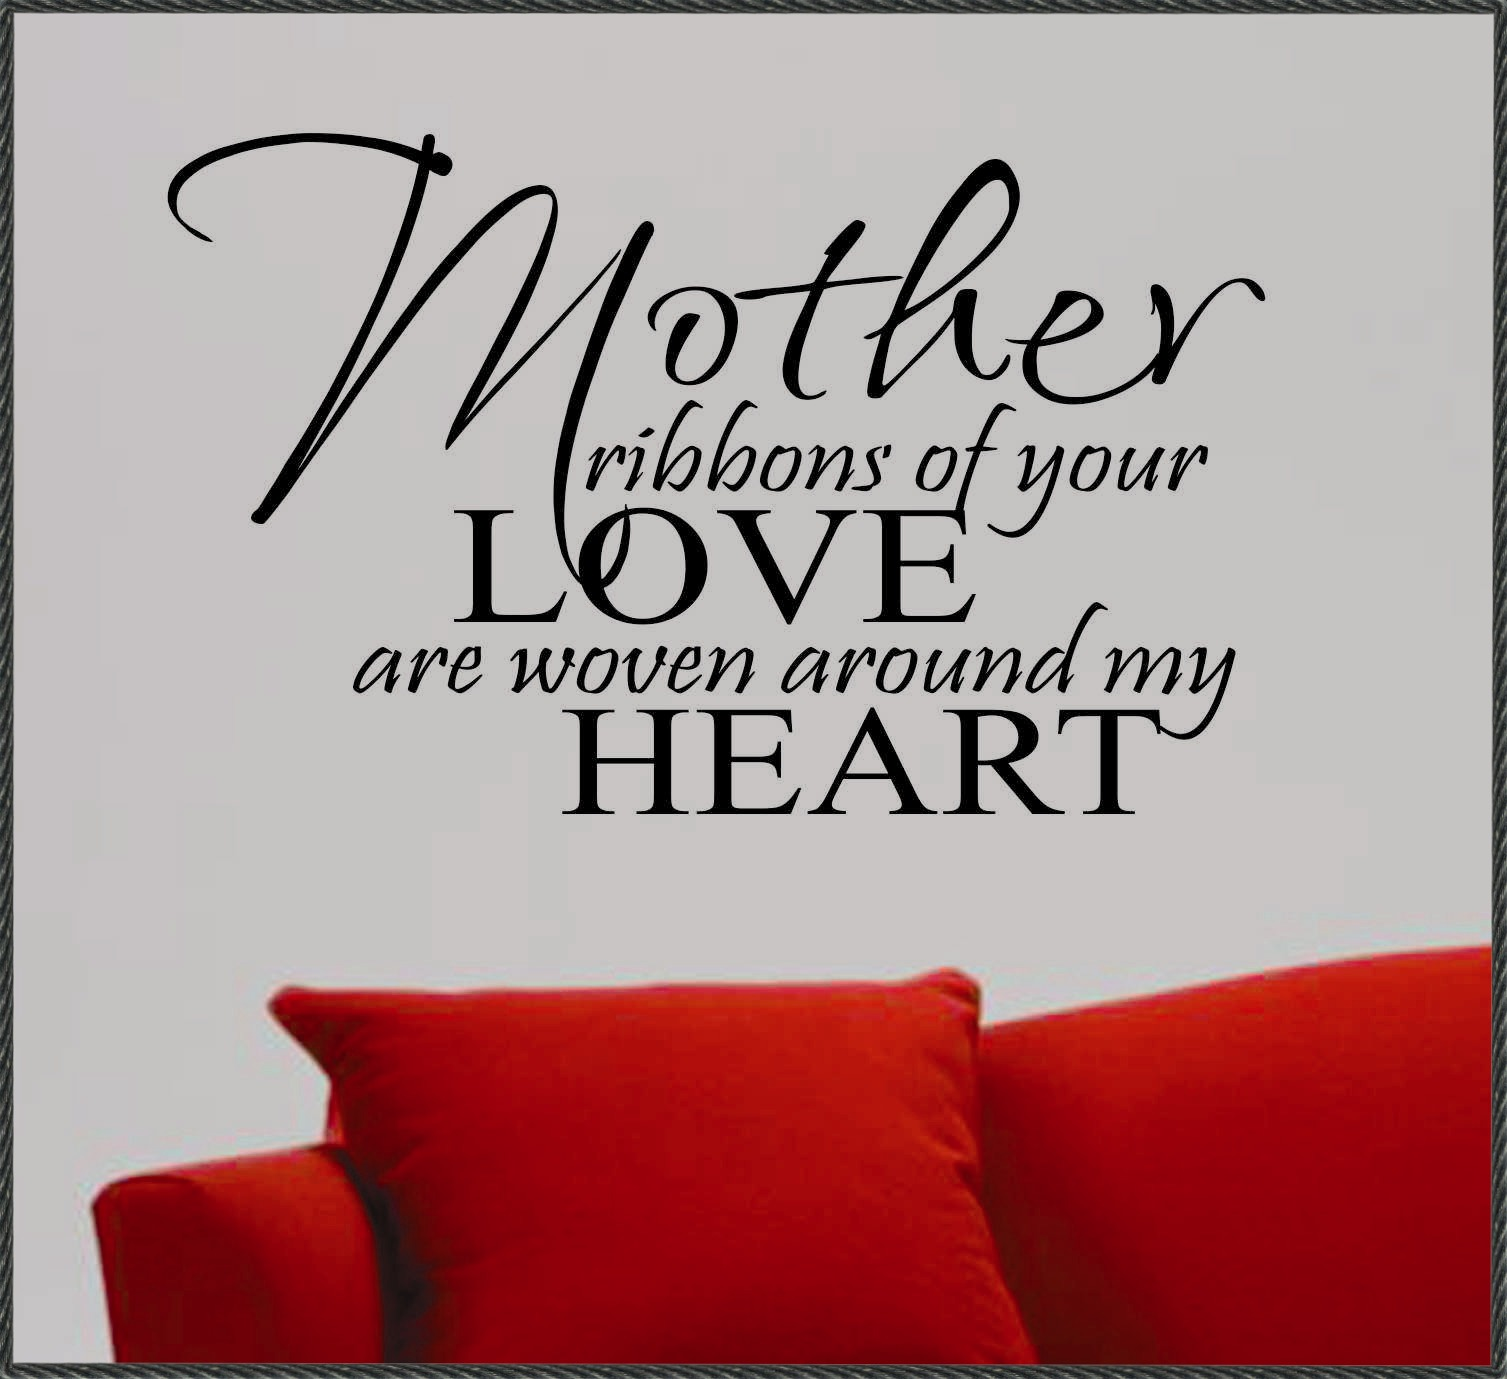 Quotes About Loving Your Mother: We Love You Mom Quotes. QuotesGram